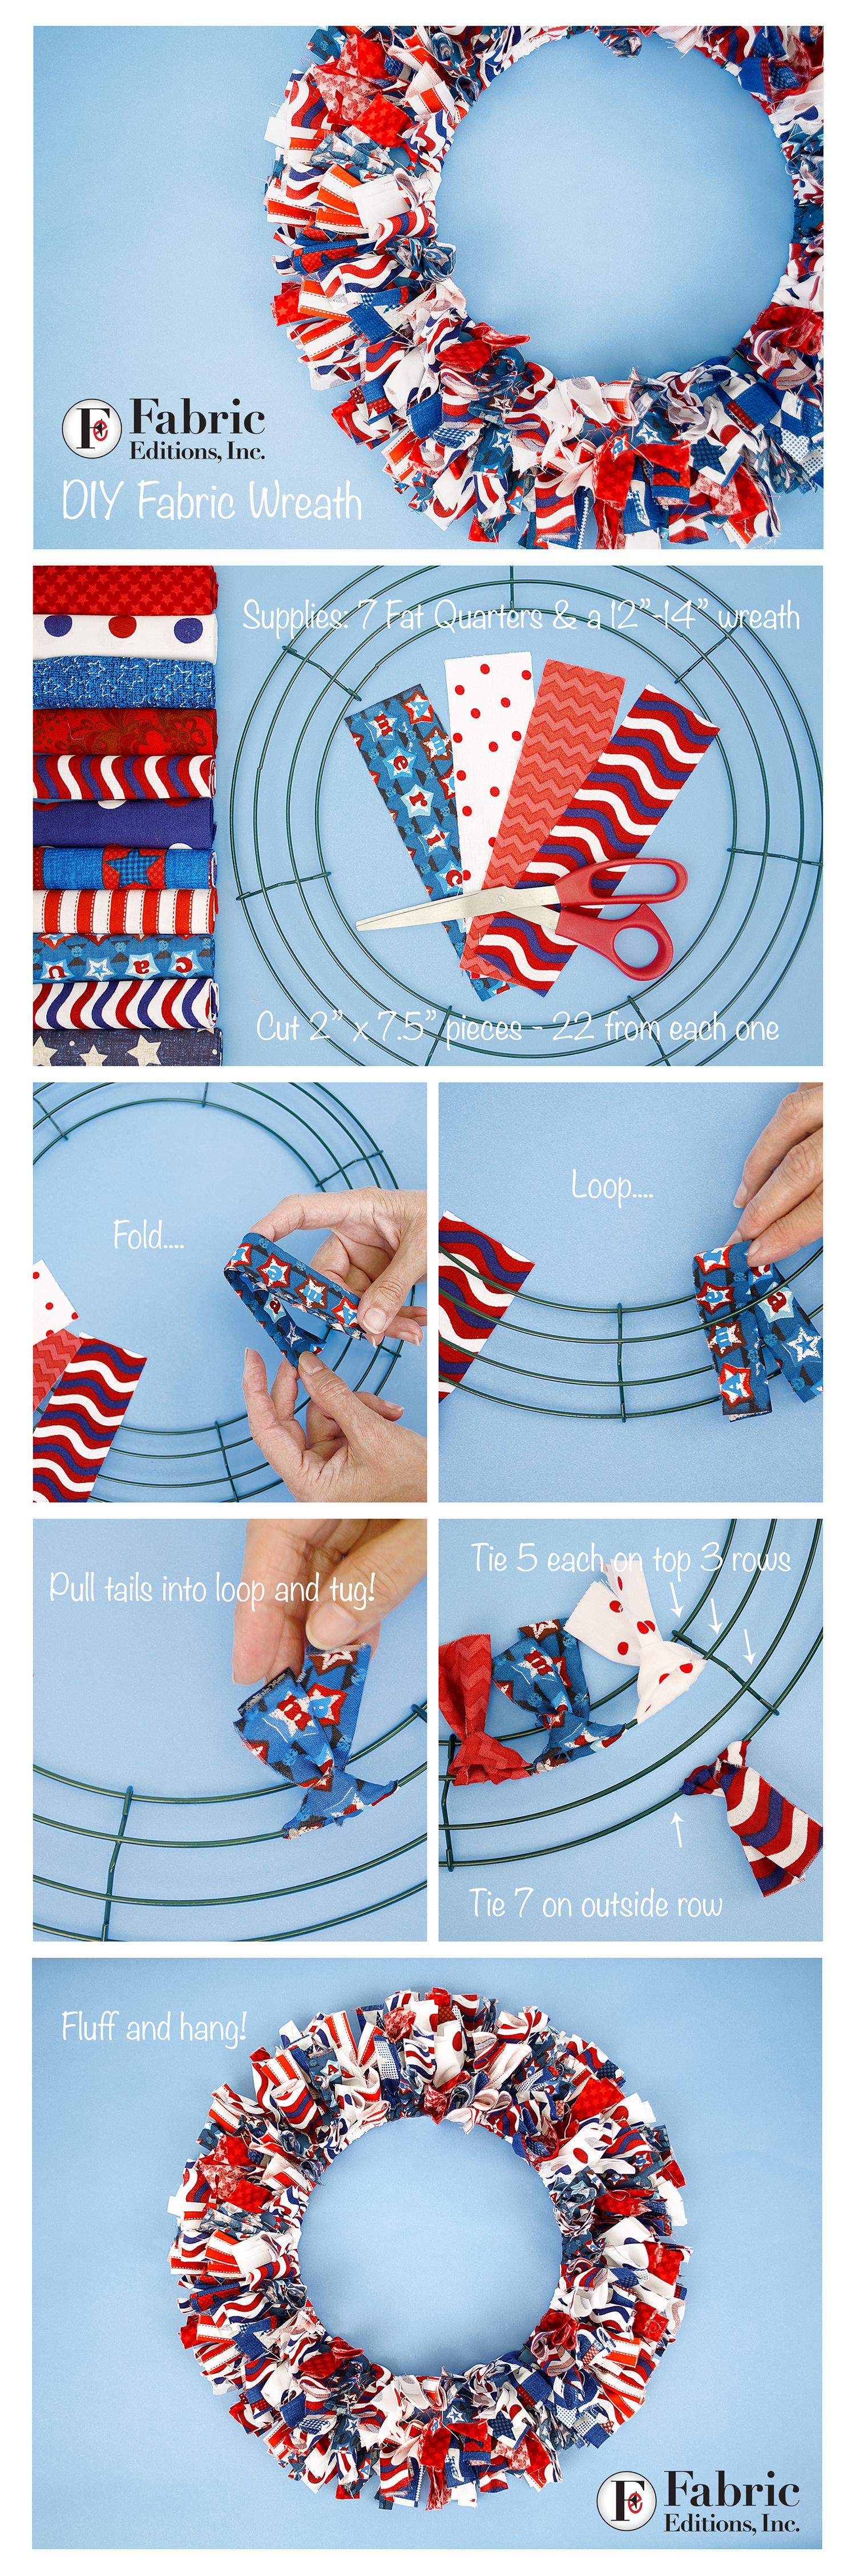 DIY Fabric Wreath step by step! Find your favorite Fabric Palette ...